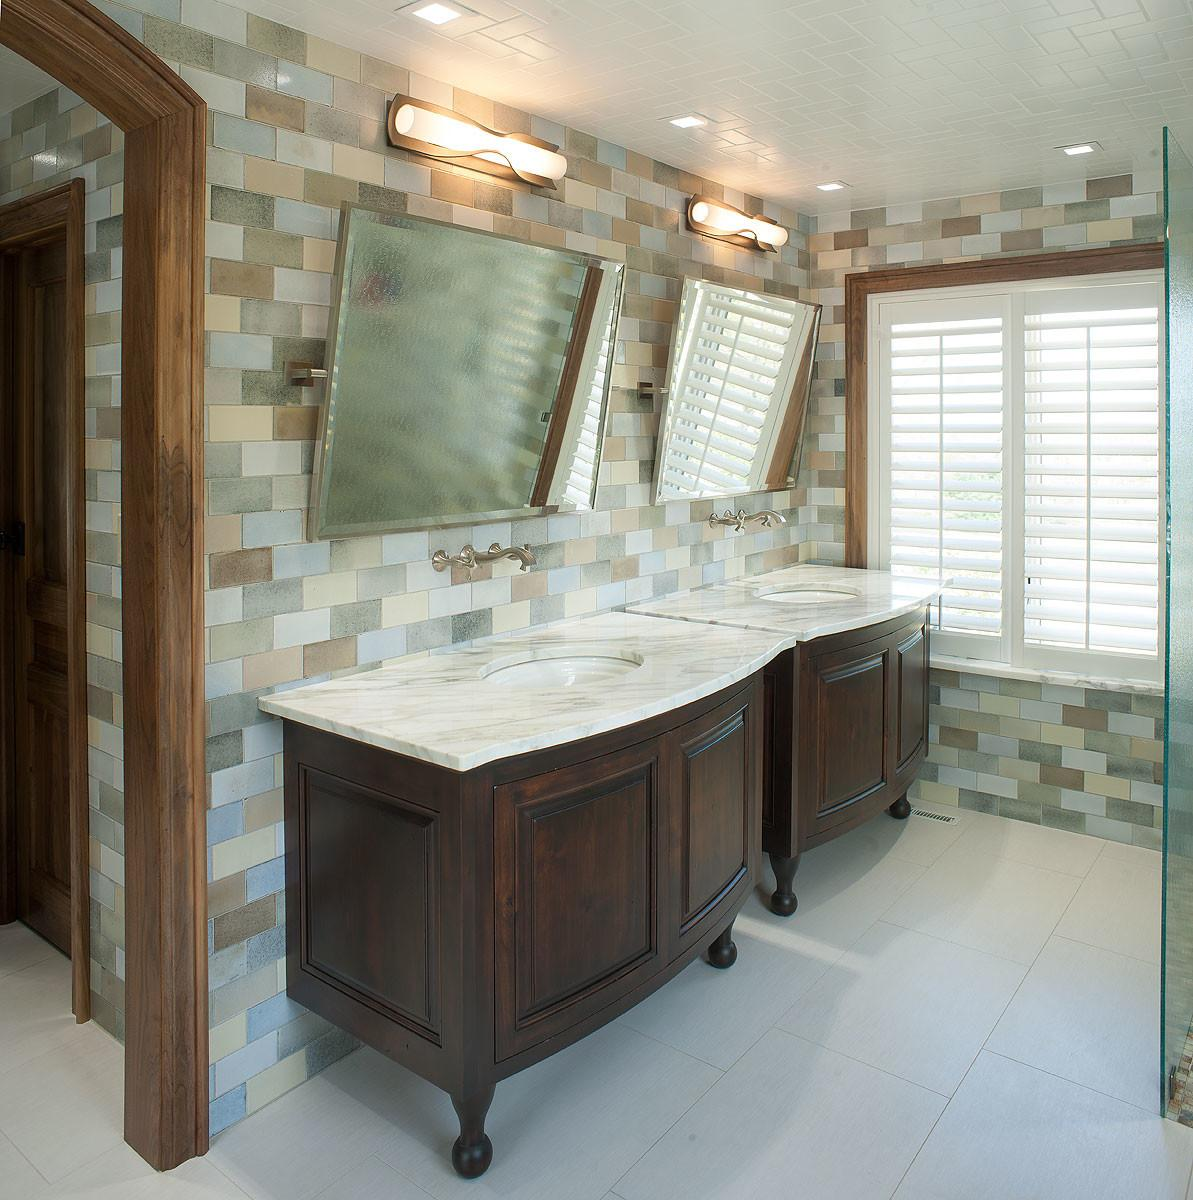 Bathroom Laundry Hers Small Remodel